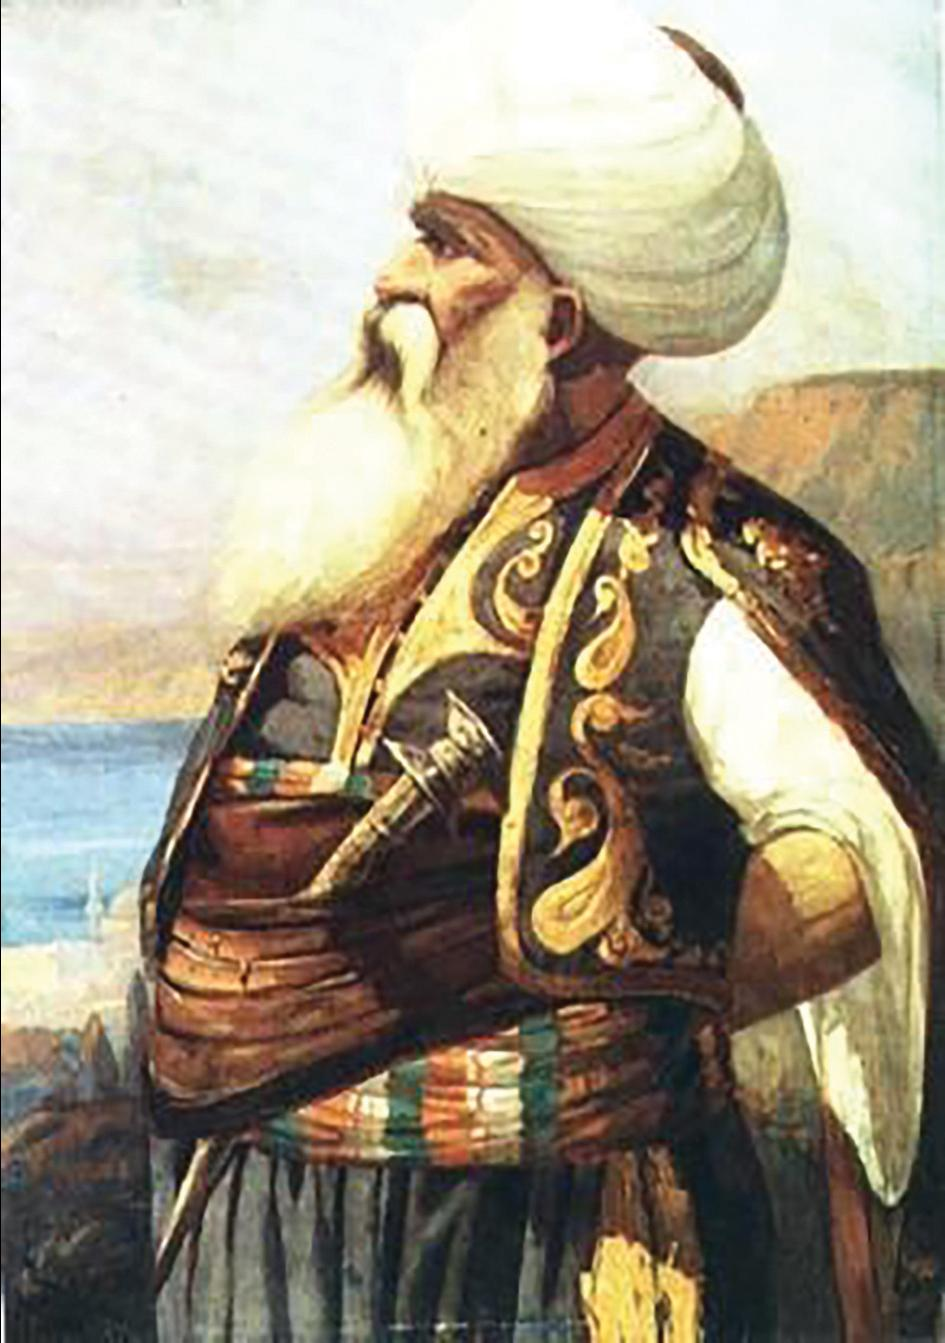 Dragut (or Torghut) Rais was 80 years old when he took part in the Great siege of 1565.